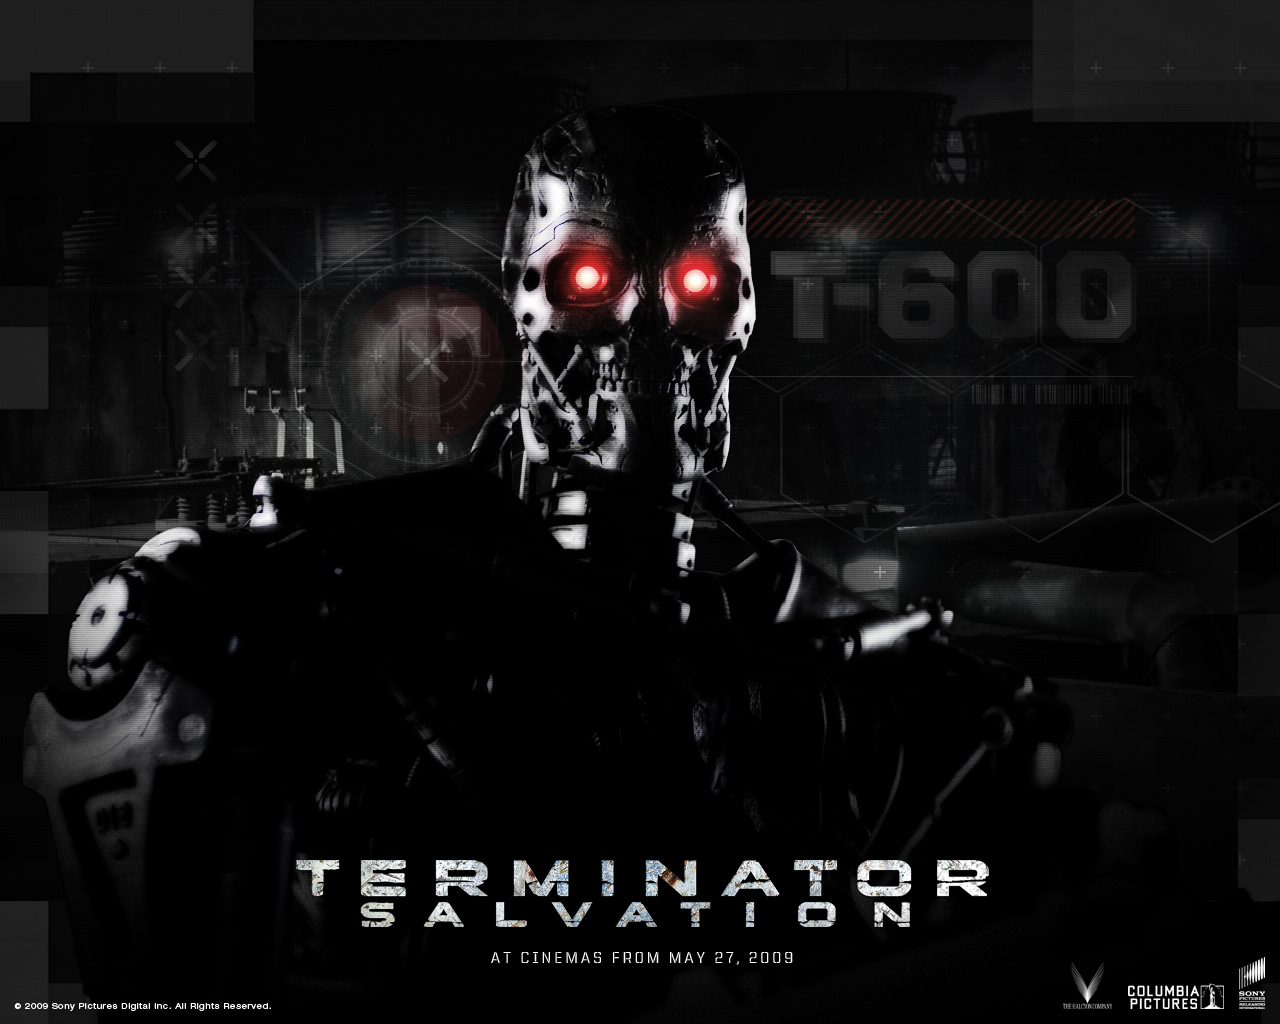 terminator salvation live wallpaper Bryce dallas howard  as well as the action film terminator salvation  its story is about a turn-of-the-20th-century village whose residents live in fear of.